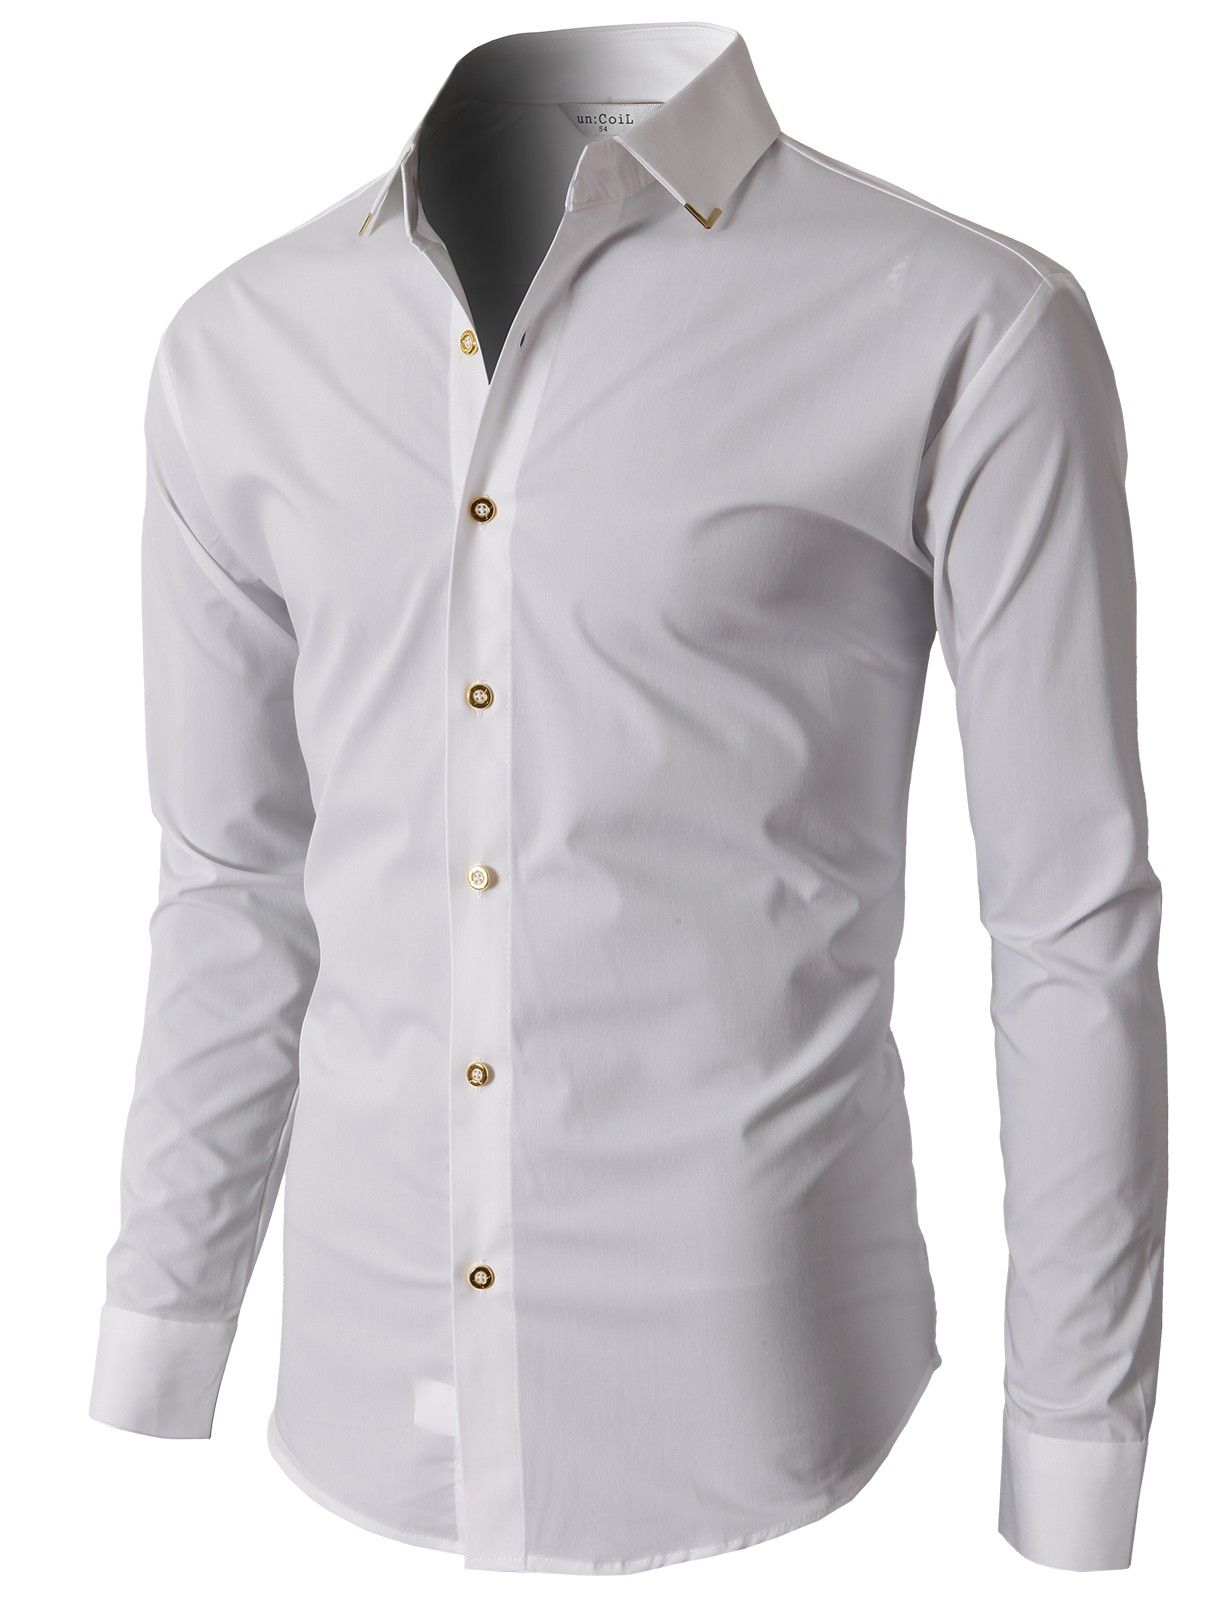 Doublju Mens Dress Shirts With Gold Pointed Collar And Gold Button